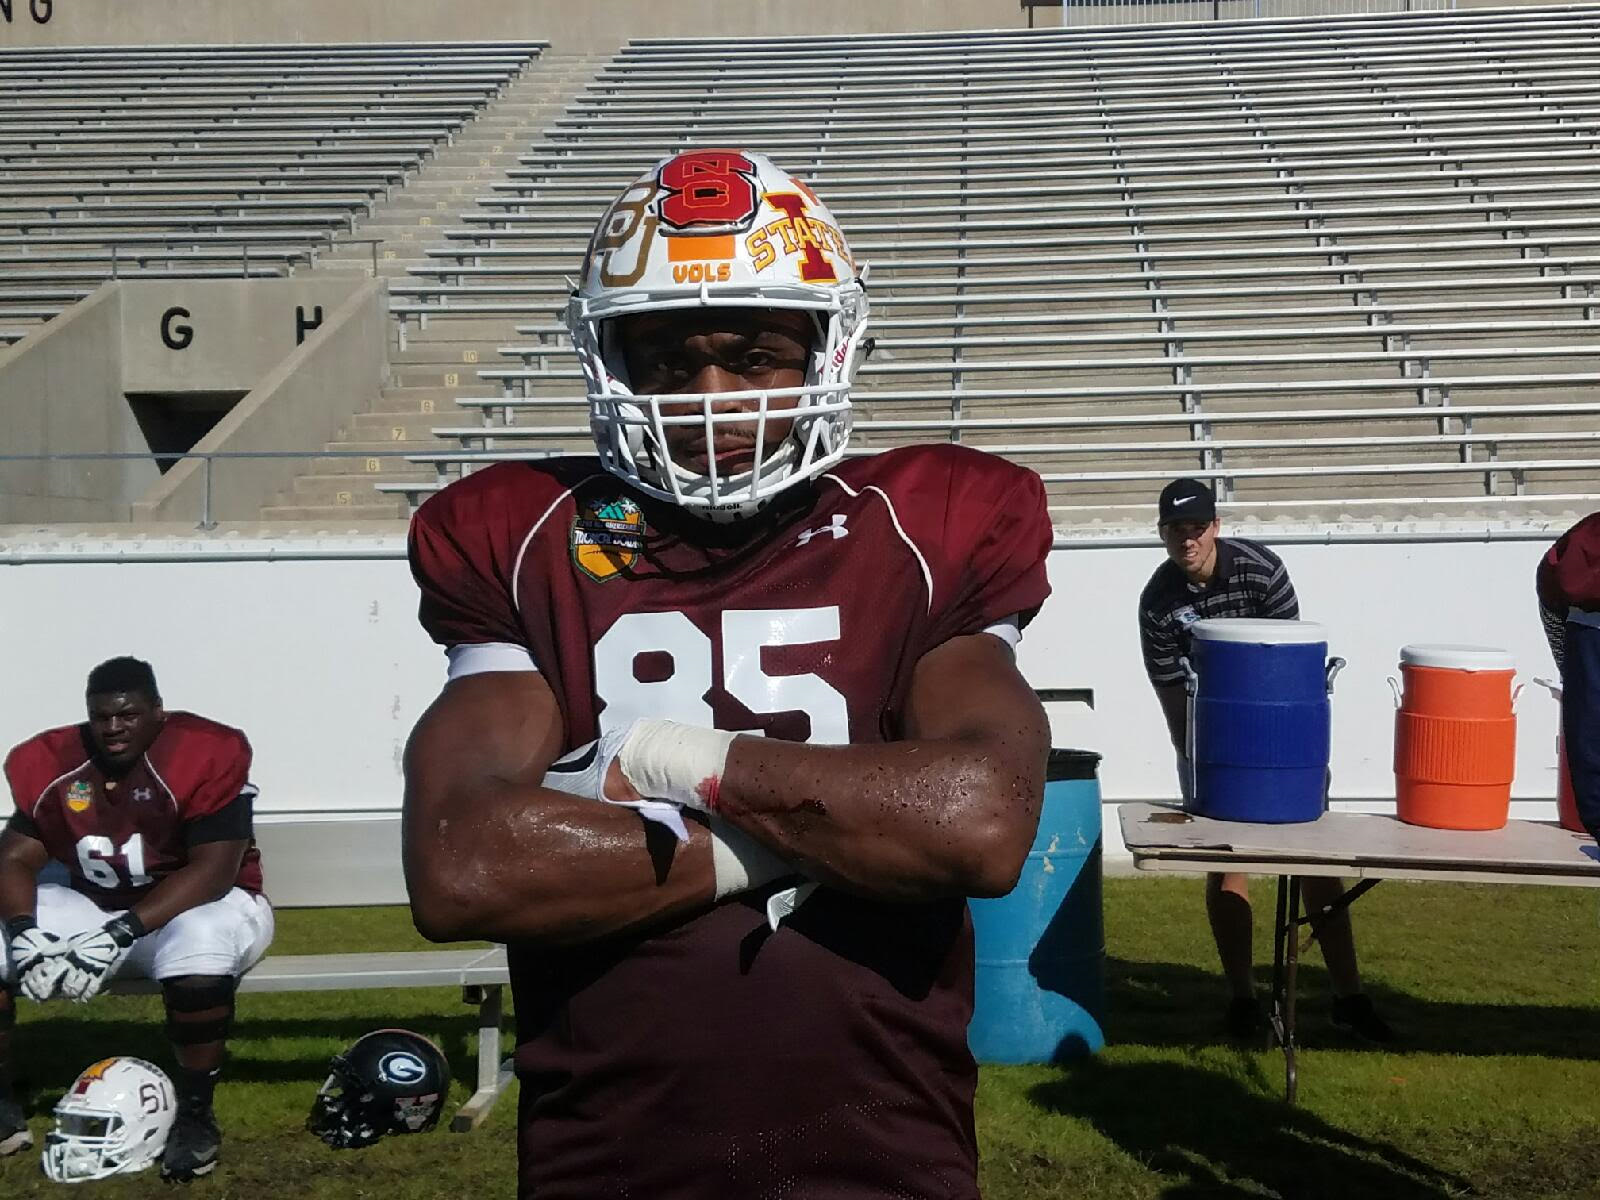 (Jason Croom posing after scoring his second touchdown of the day in the Tropical Bowl)